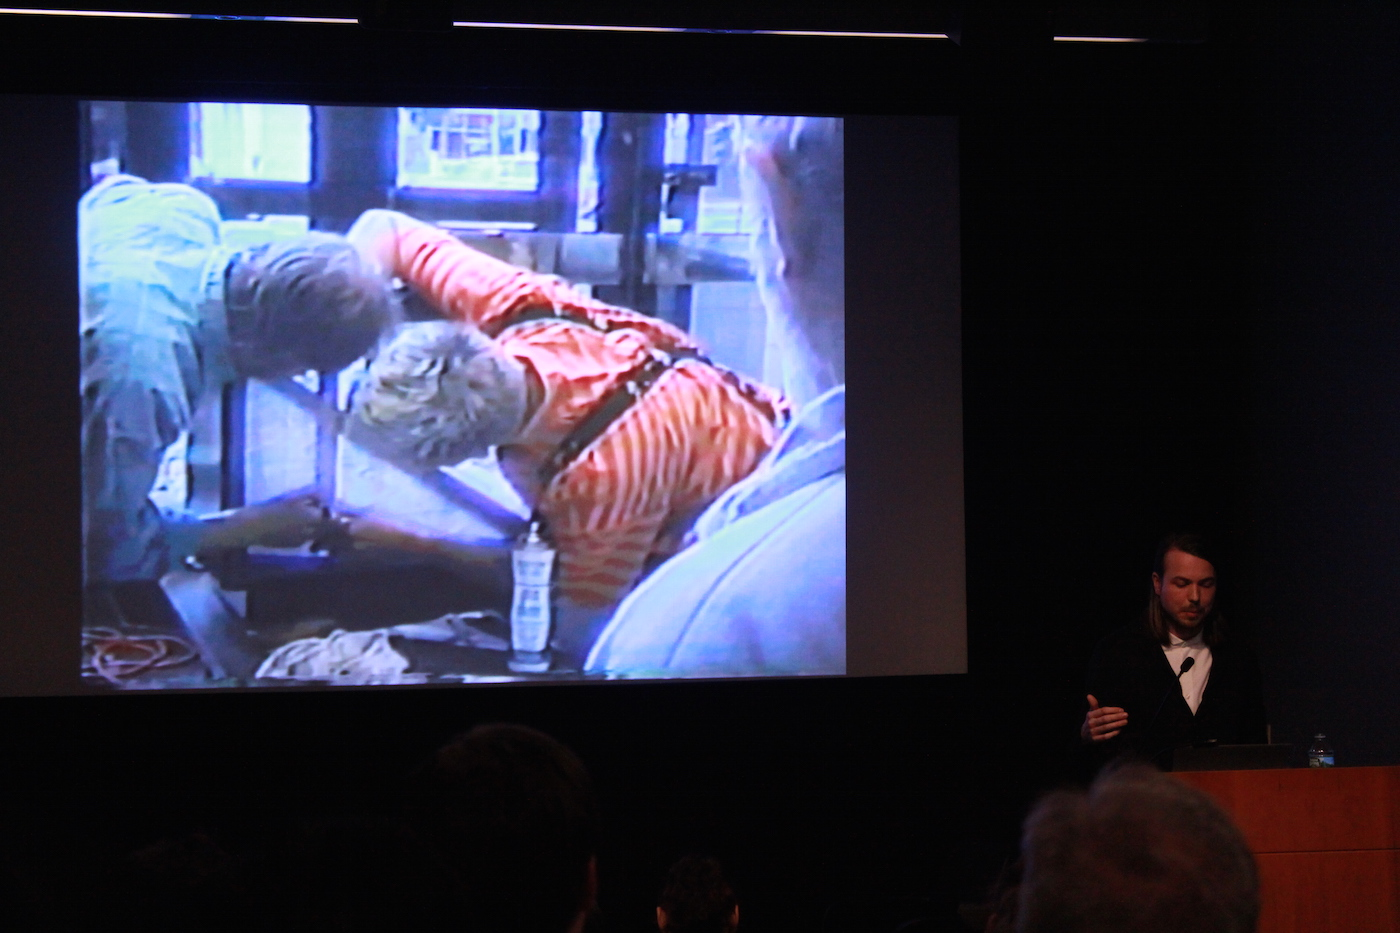 Eddy Colloton - Re-Constructions: Preserving the Video Installations of Buky Schwartz